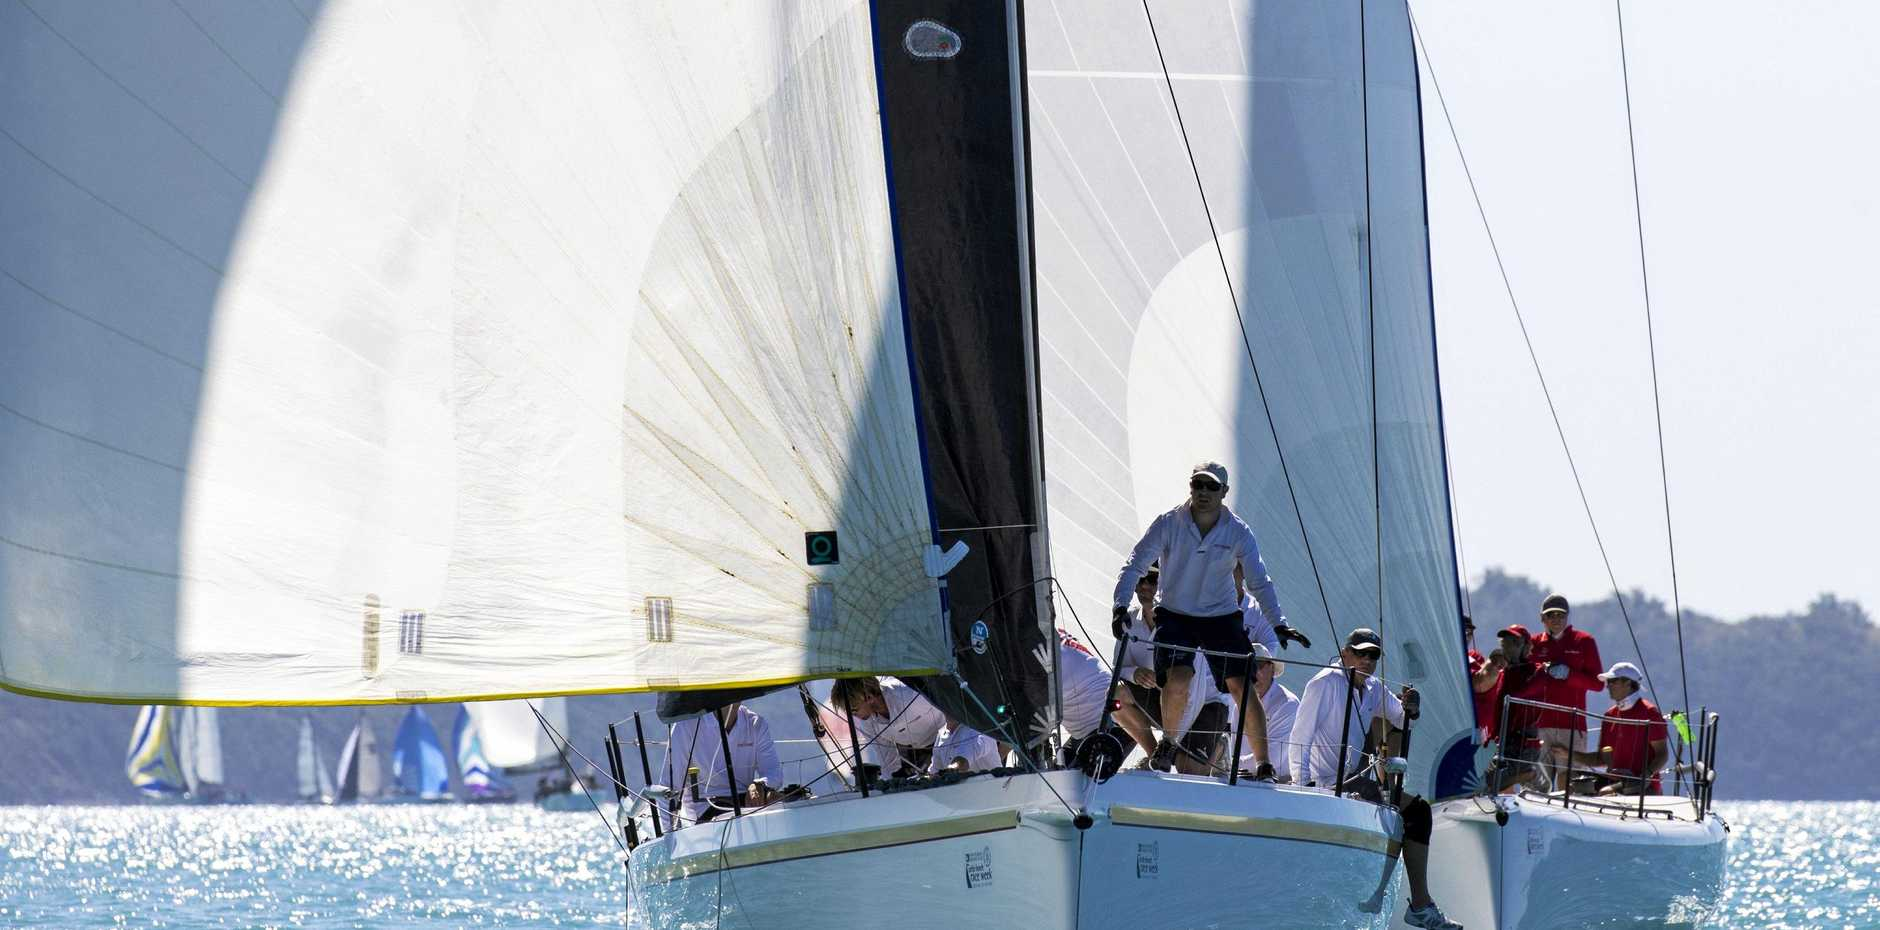 Victorie and Team Hollywood competing at last year's Airlie Beach Race Week.